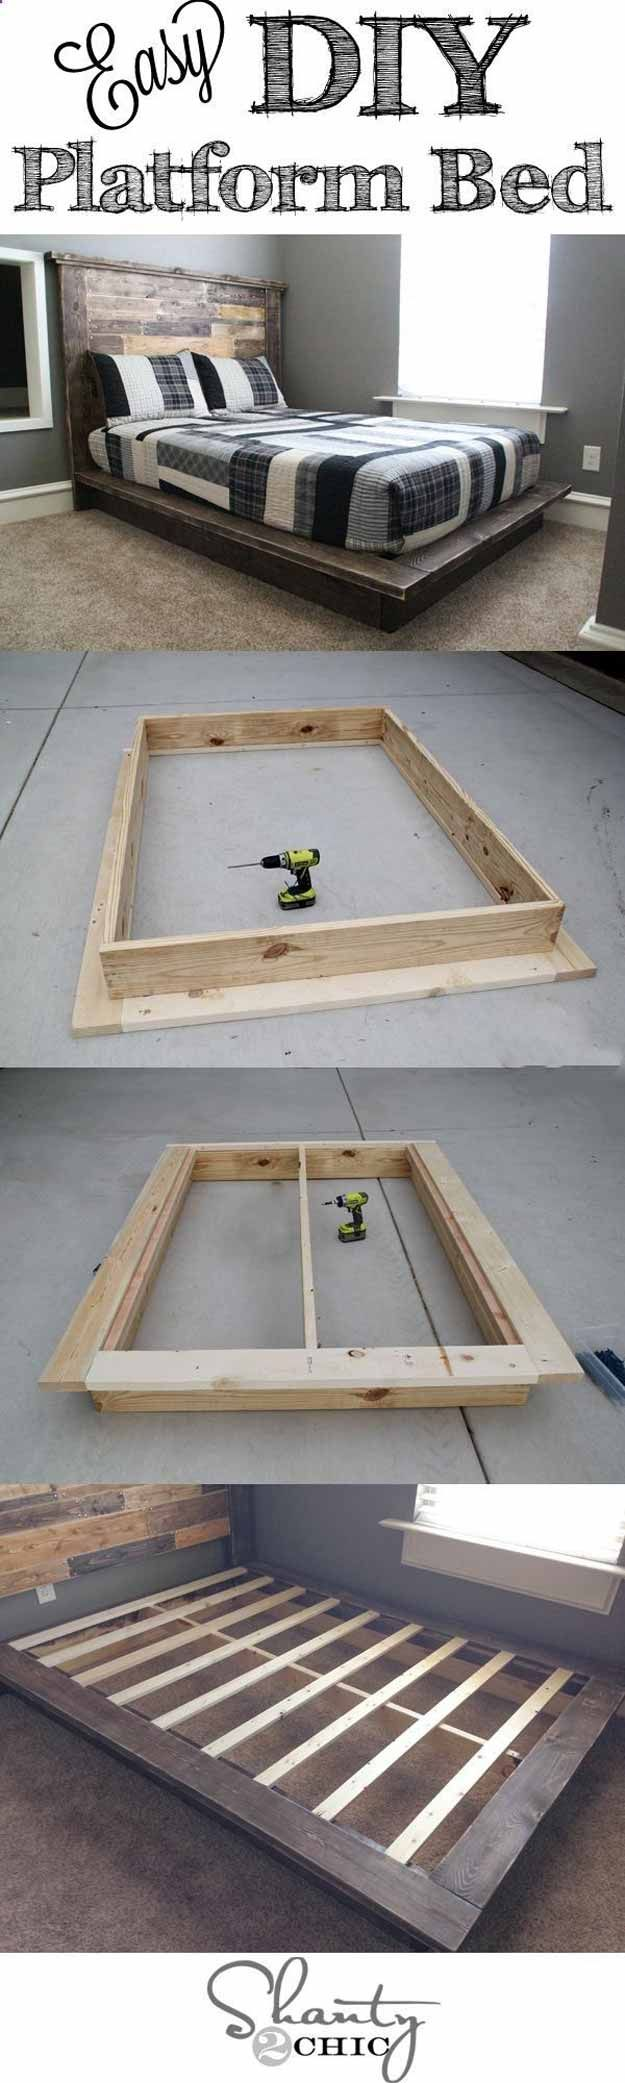 Easy DIY Platform Bed | 14 DIY Platform Beds to Upgrade Your Bedroom